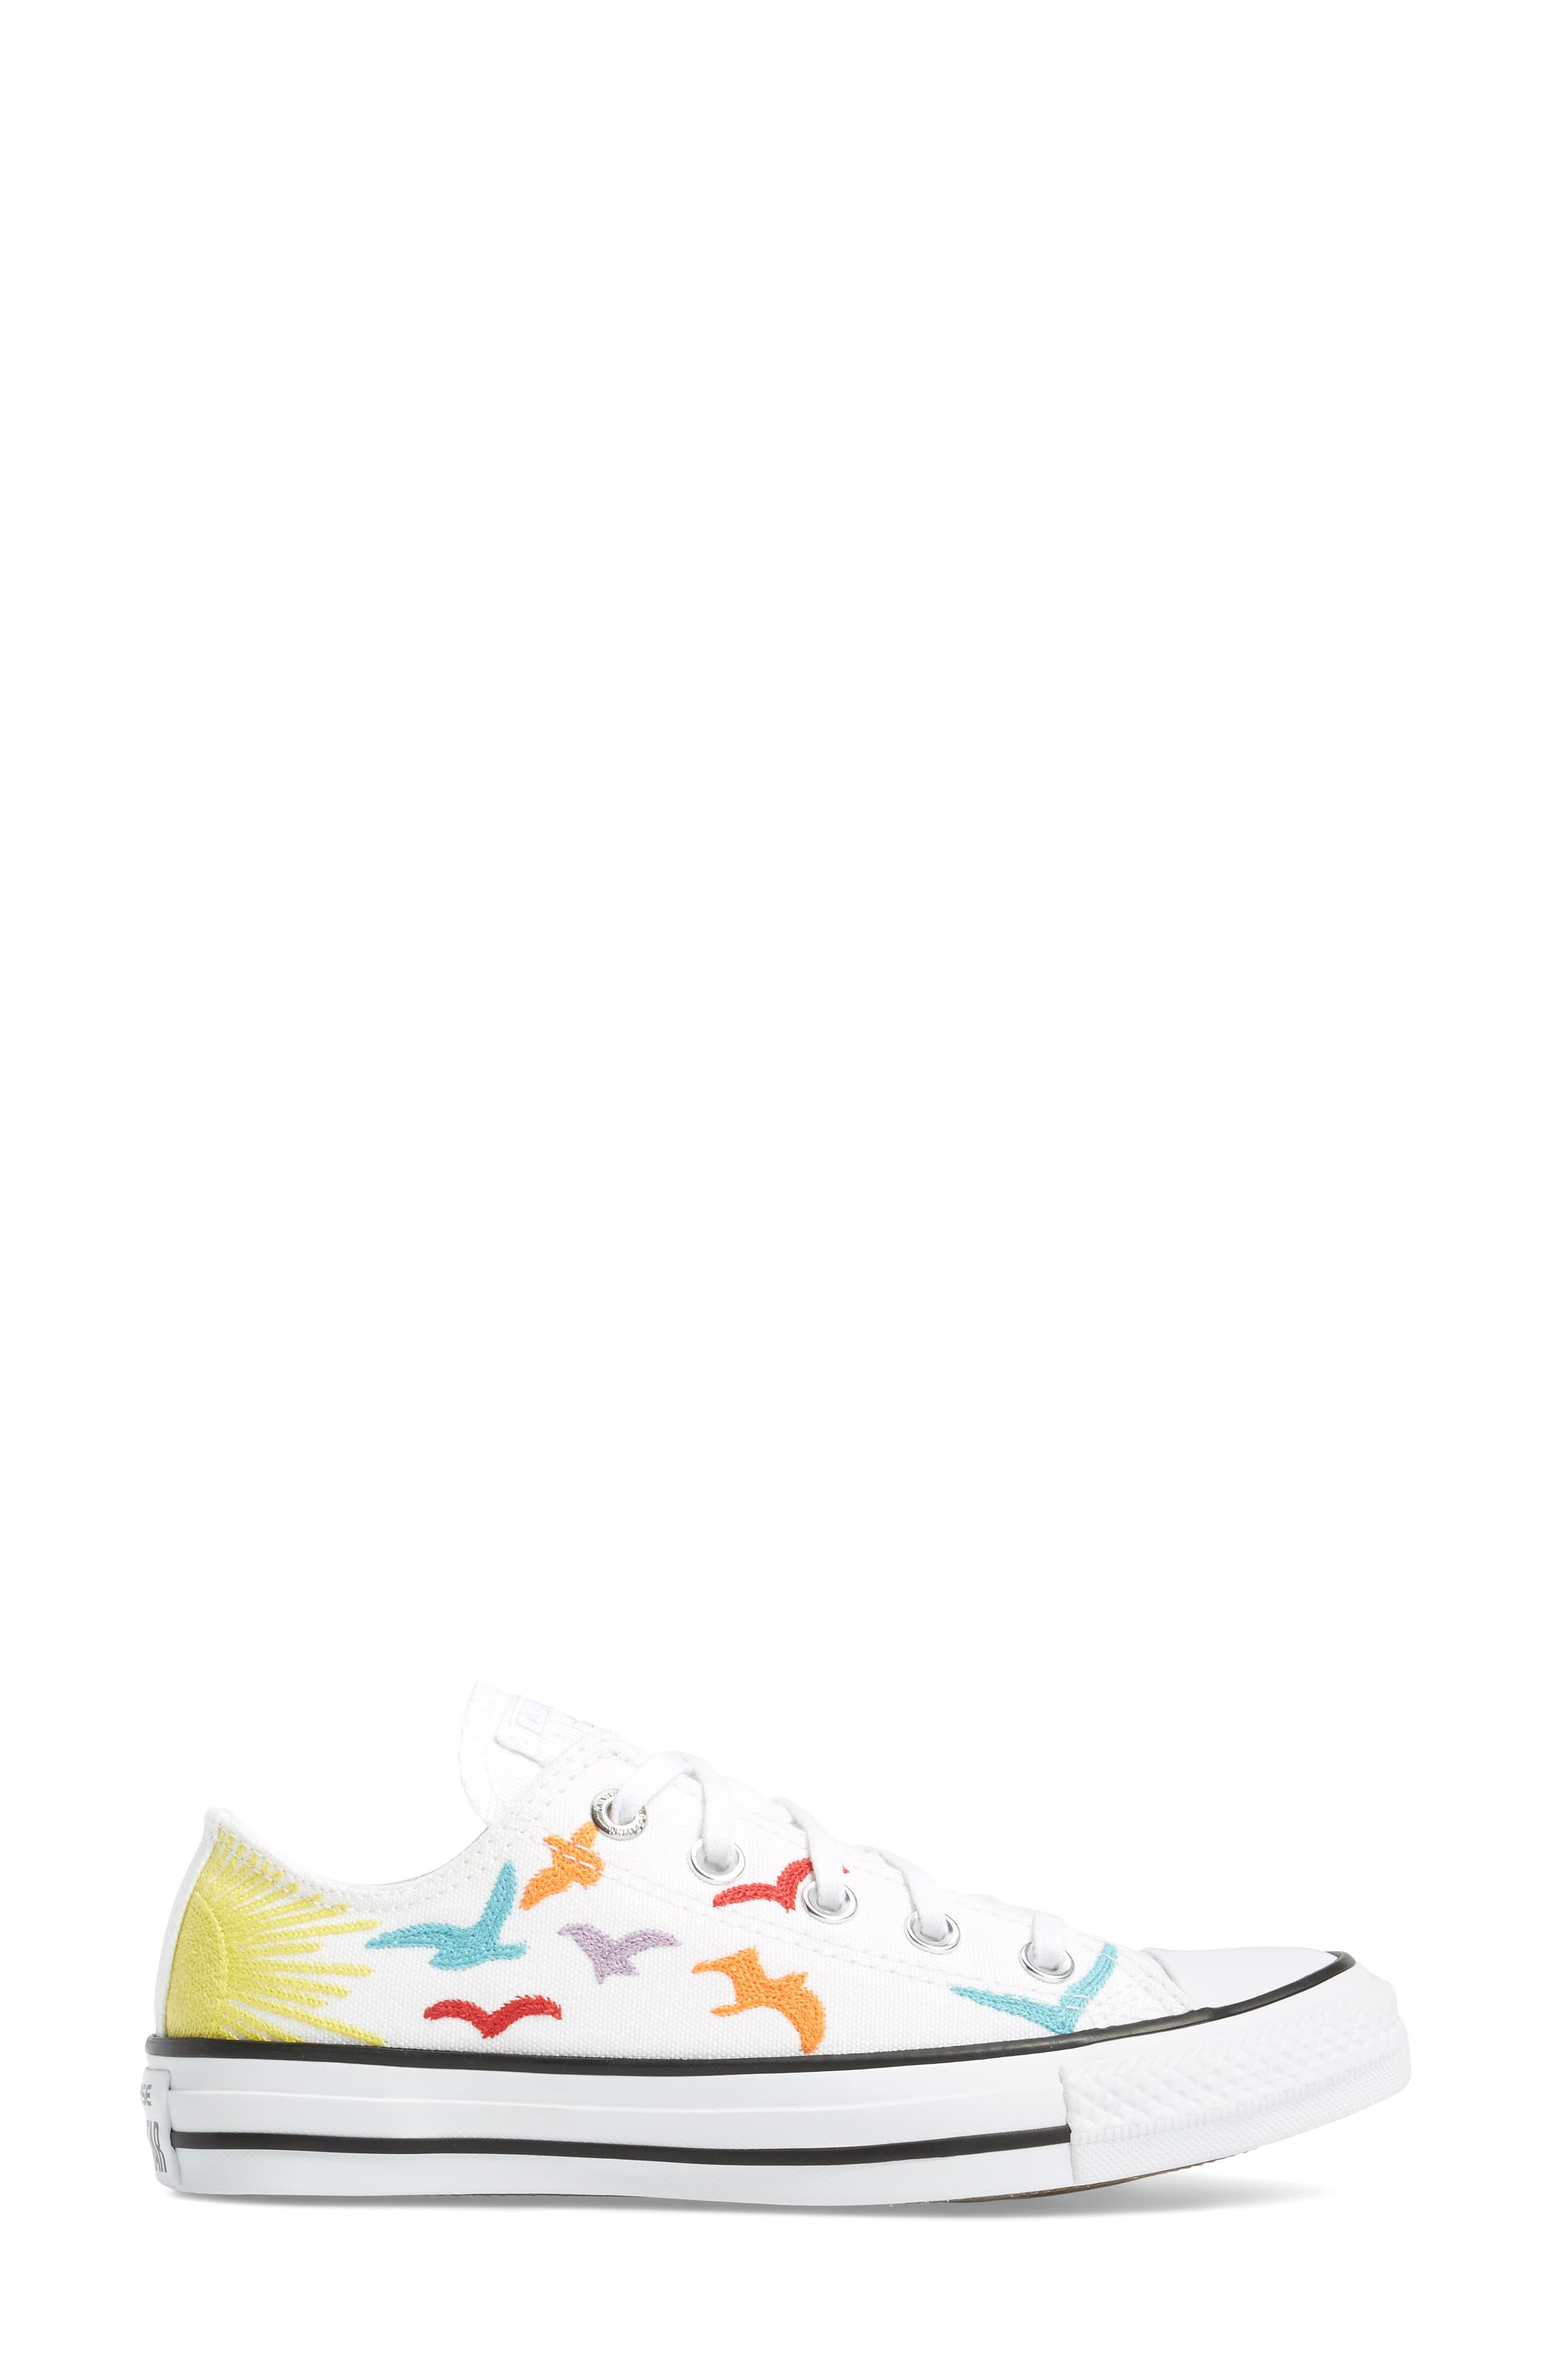 x Mara Hoffman All Star<sup>®</sup> Embroidered Ox Sneaker,                             Alternate thumbnail 3, color,                             100